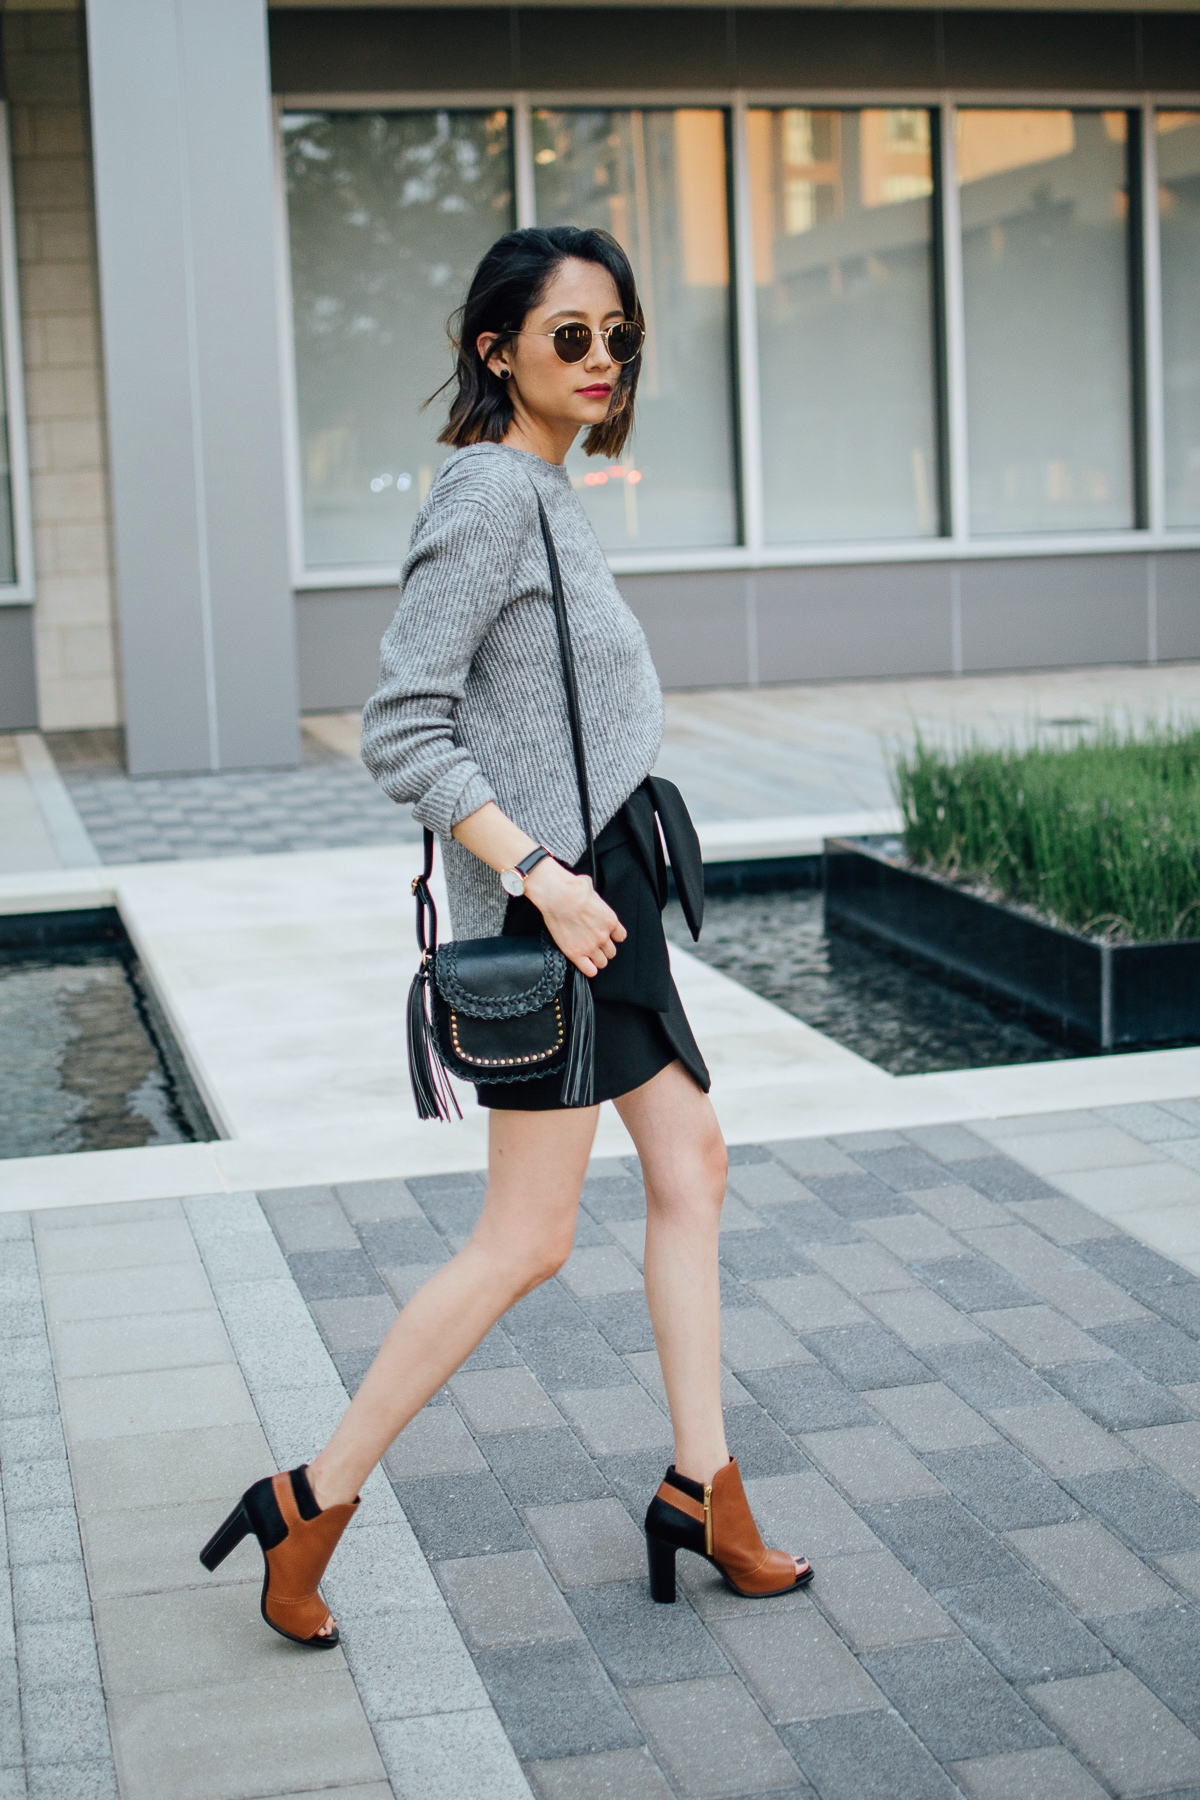 Daily Craving wearing a trendy fall look with an oversized grey sweater, black mini skirt and brown leather boots